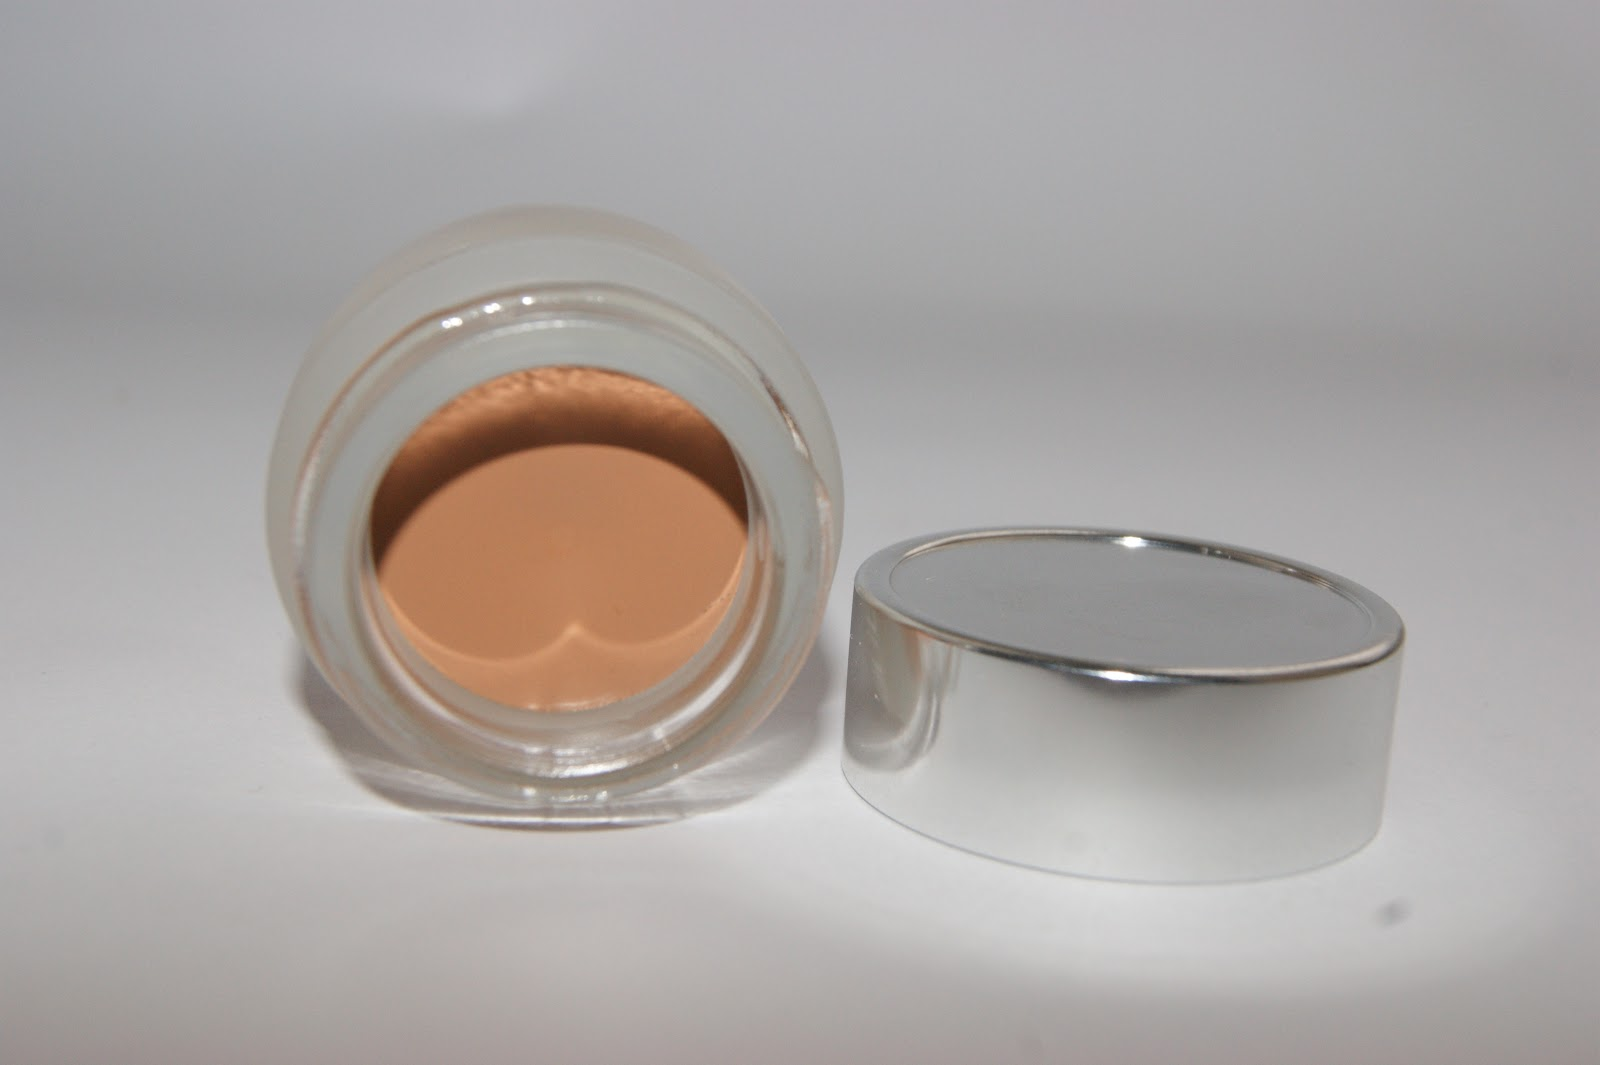 Clinique Even Better Concealer Review The Sunday Girl